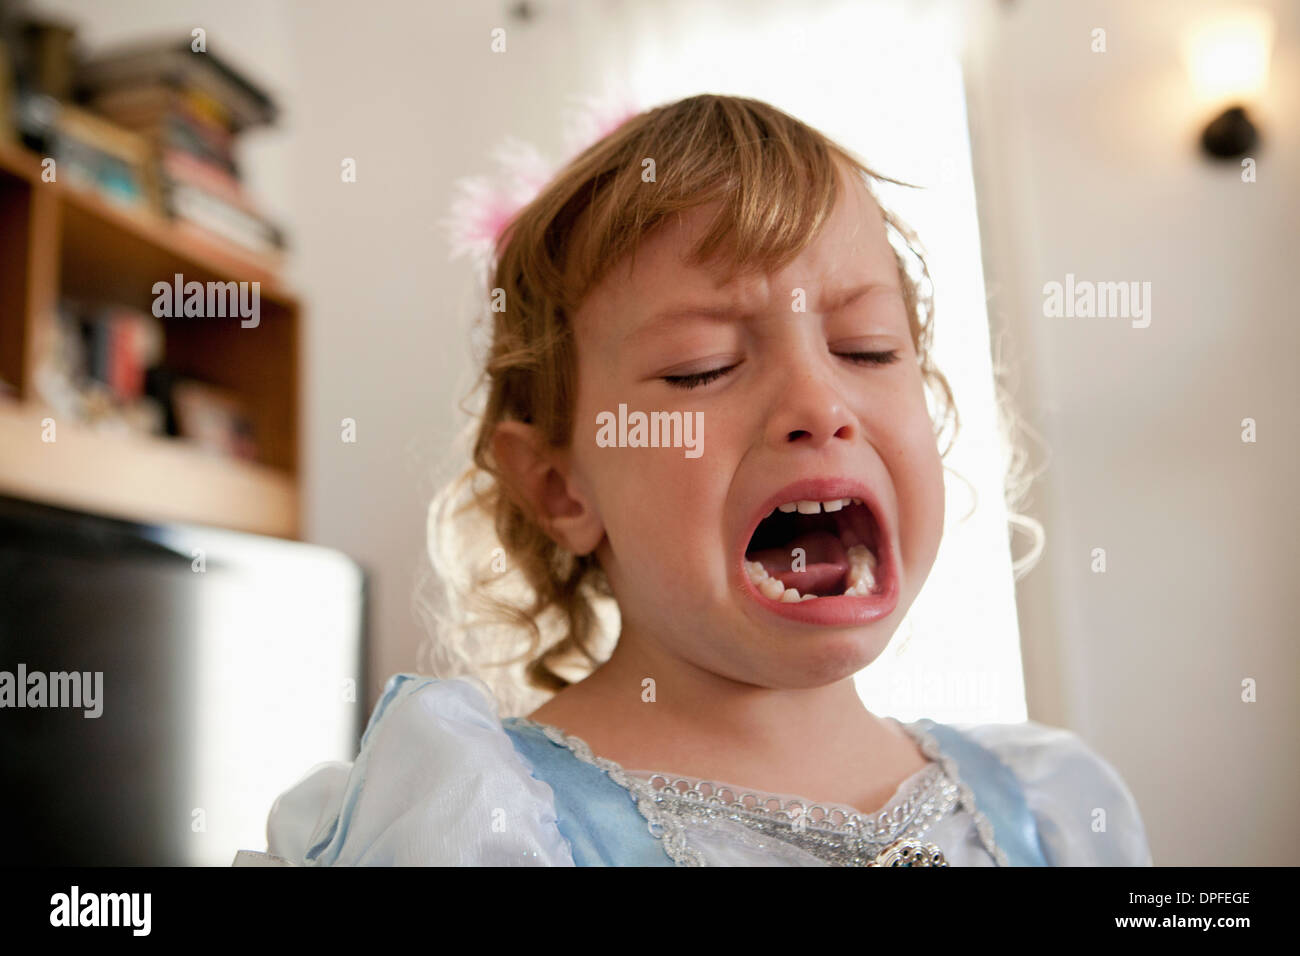 Close up of young woman crying Photo Stock